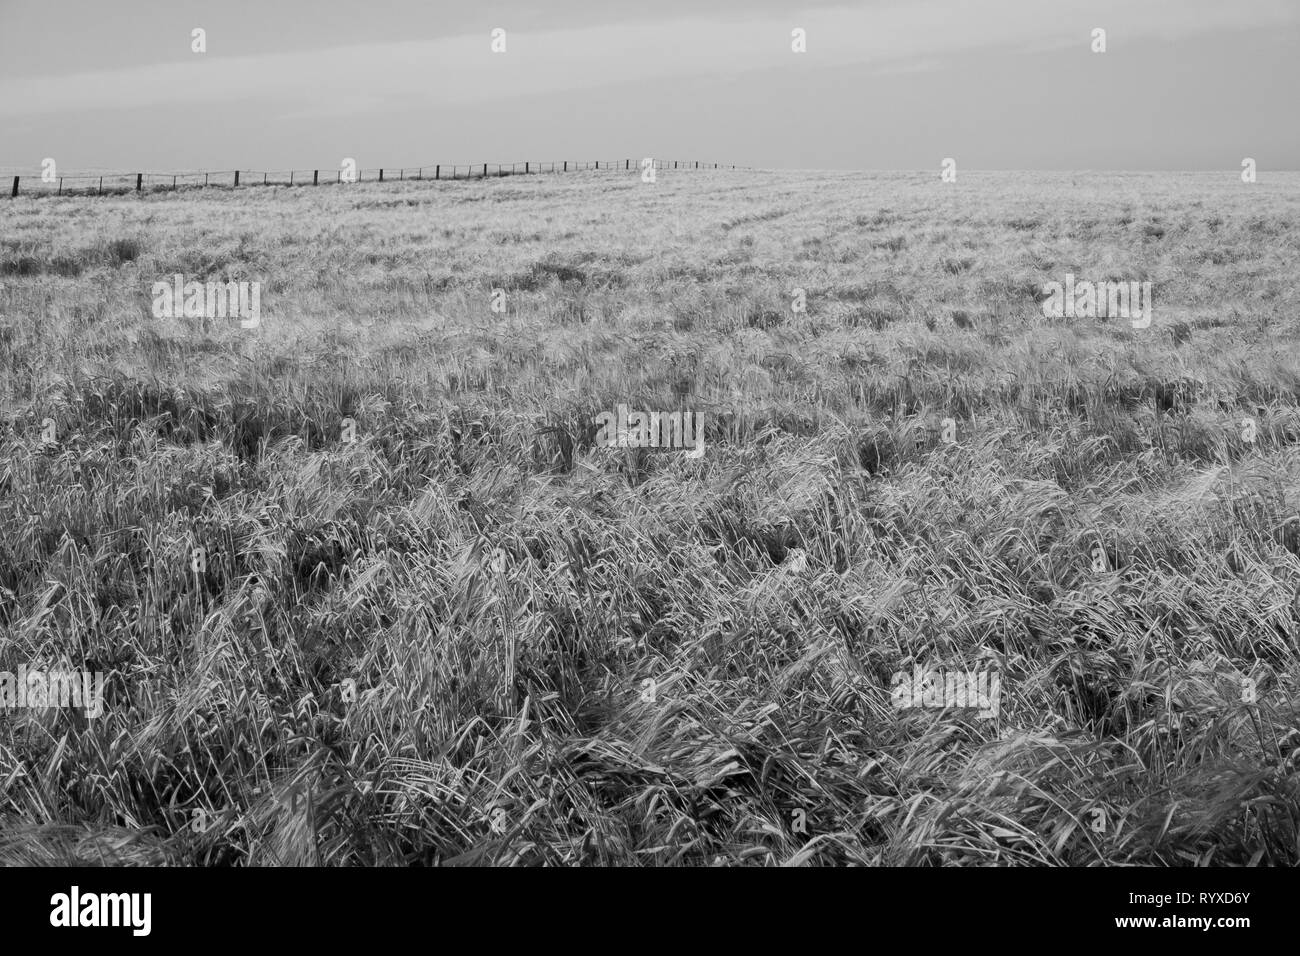 Wheat fields in rural Australia on a sunny day - Stock Image